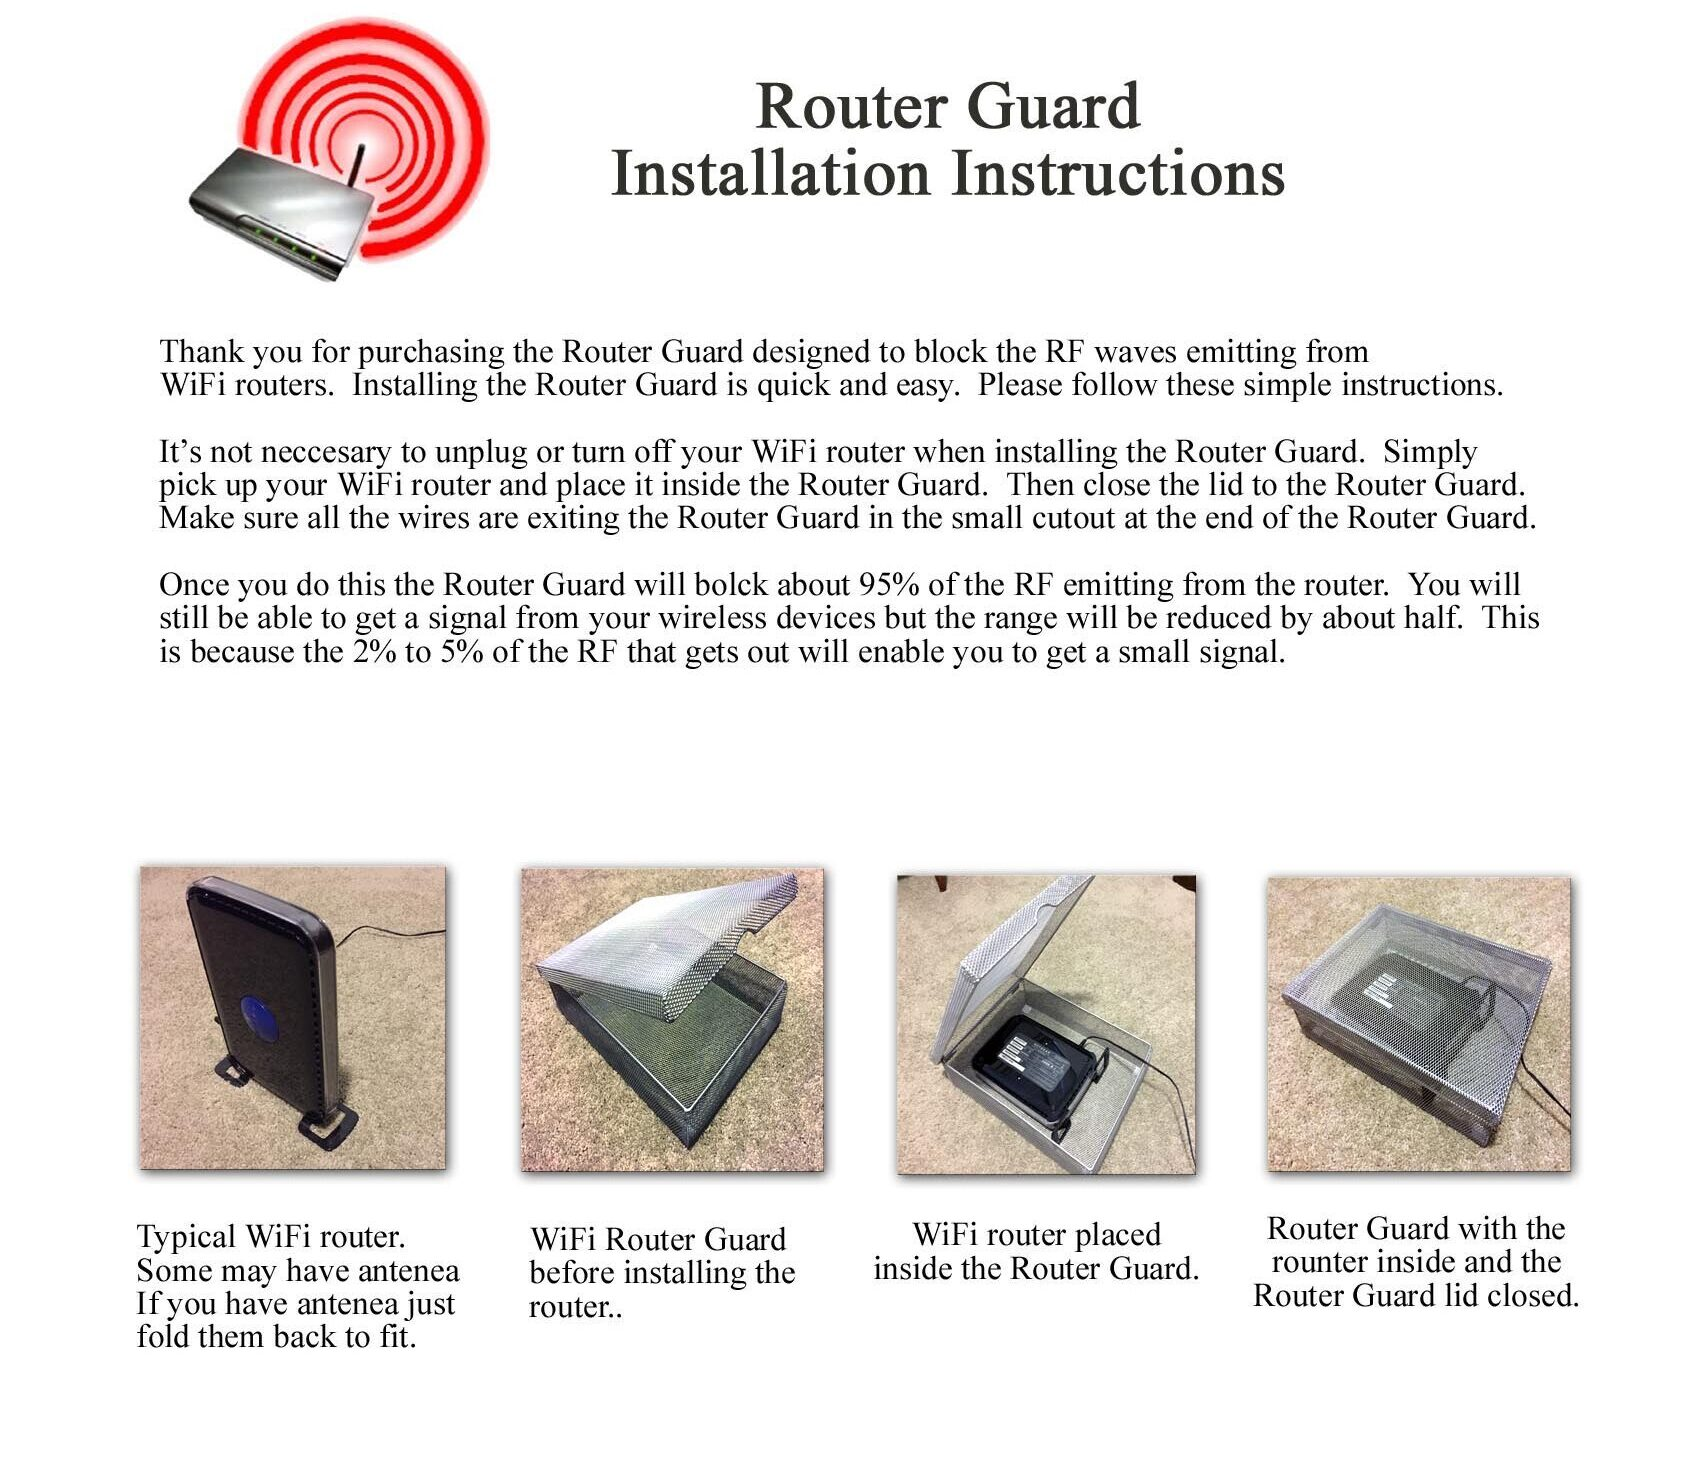 Router Guard Installation Instructions